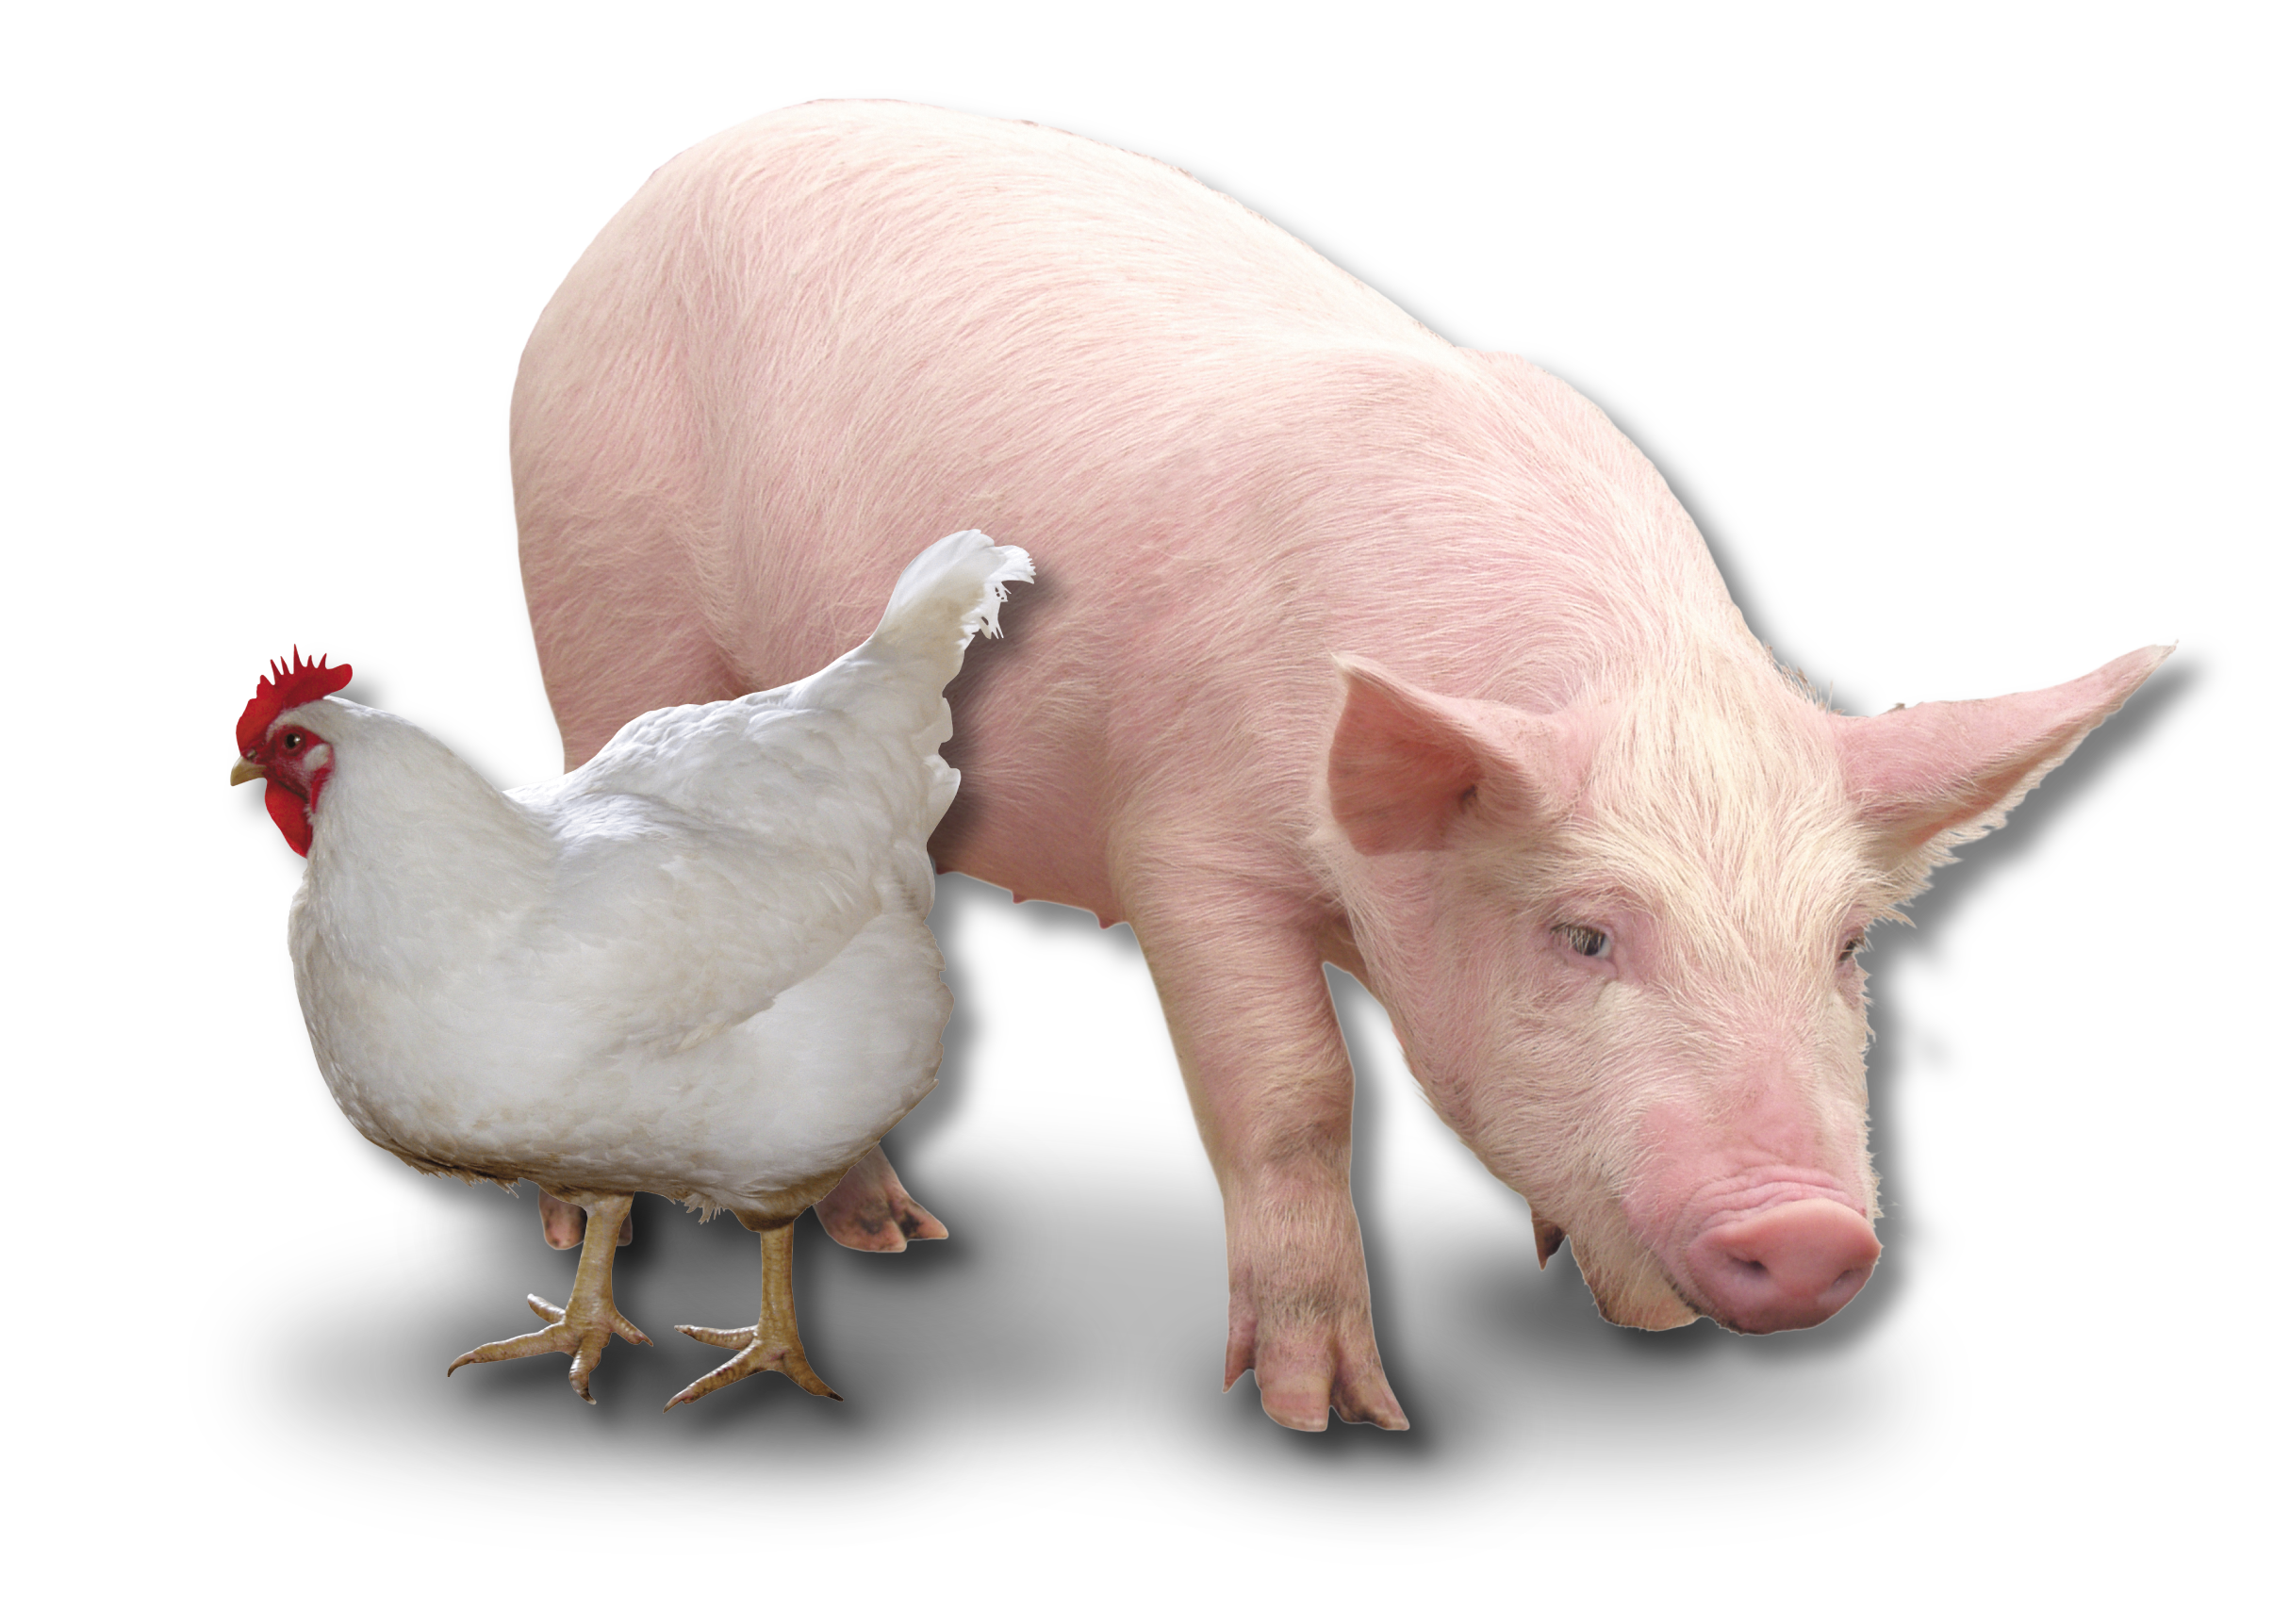 feedview inventory management - pig and poultry